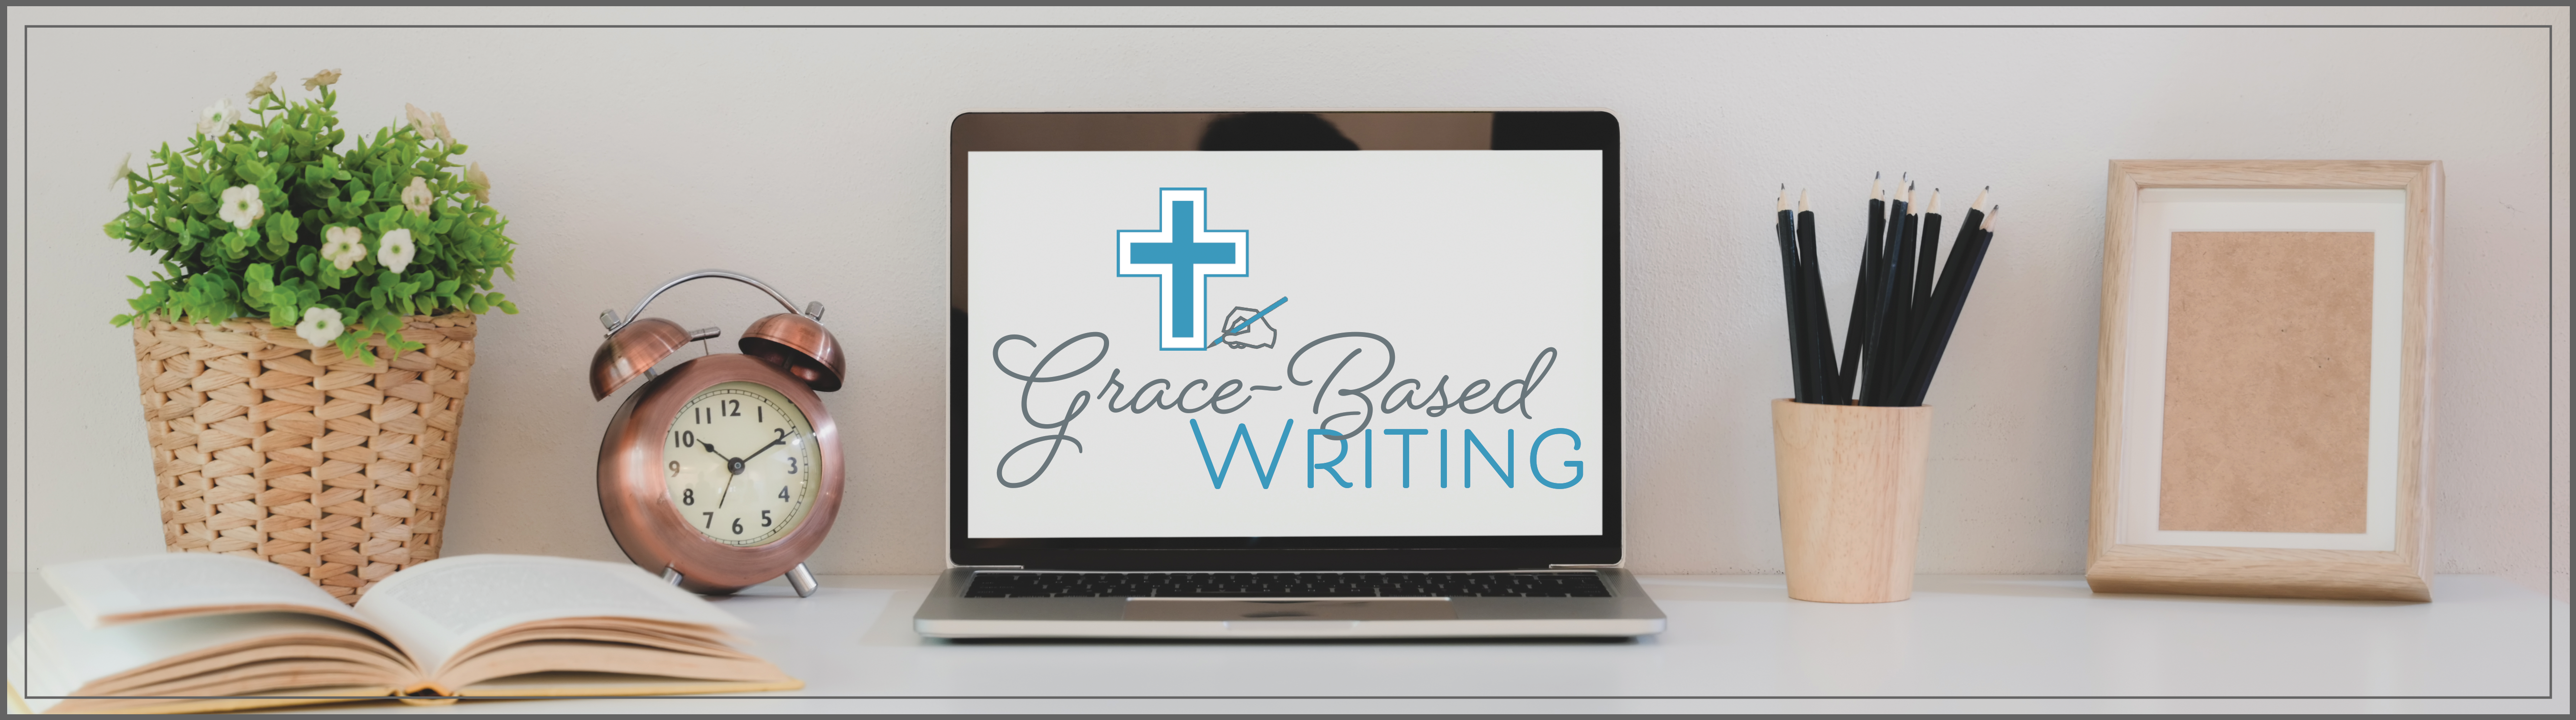 Grace-Based Writing